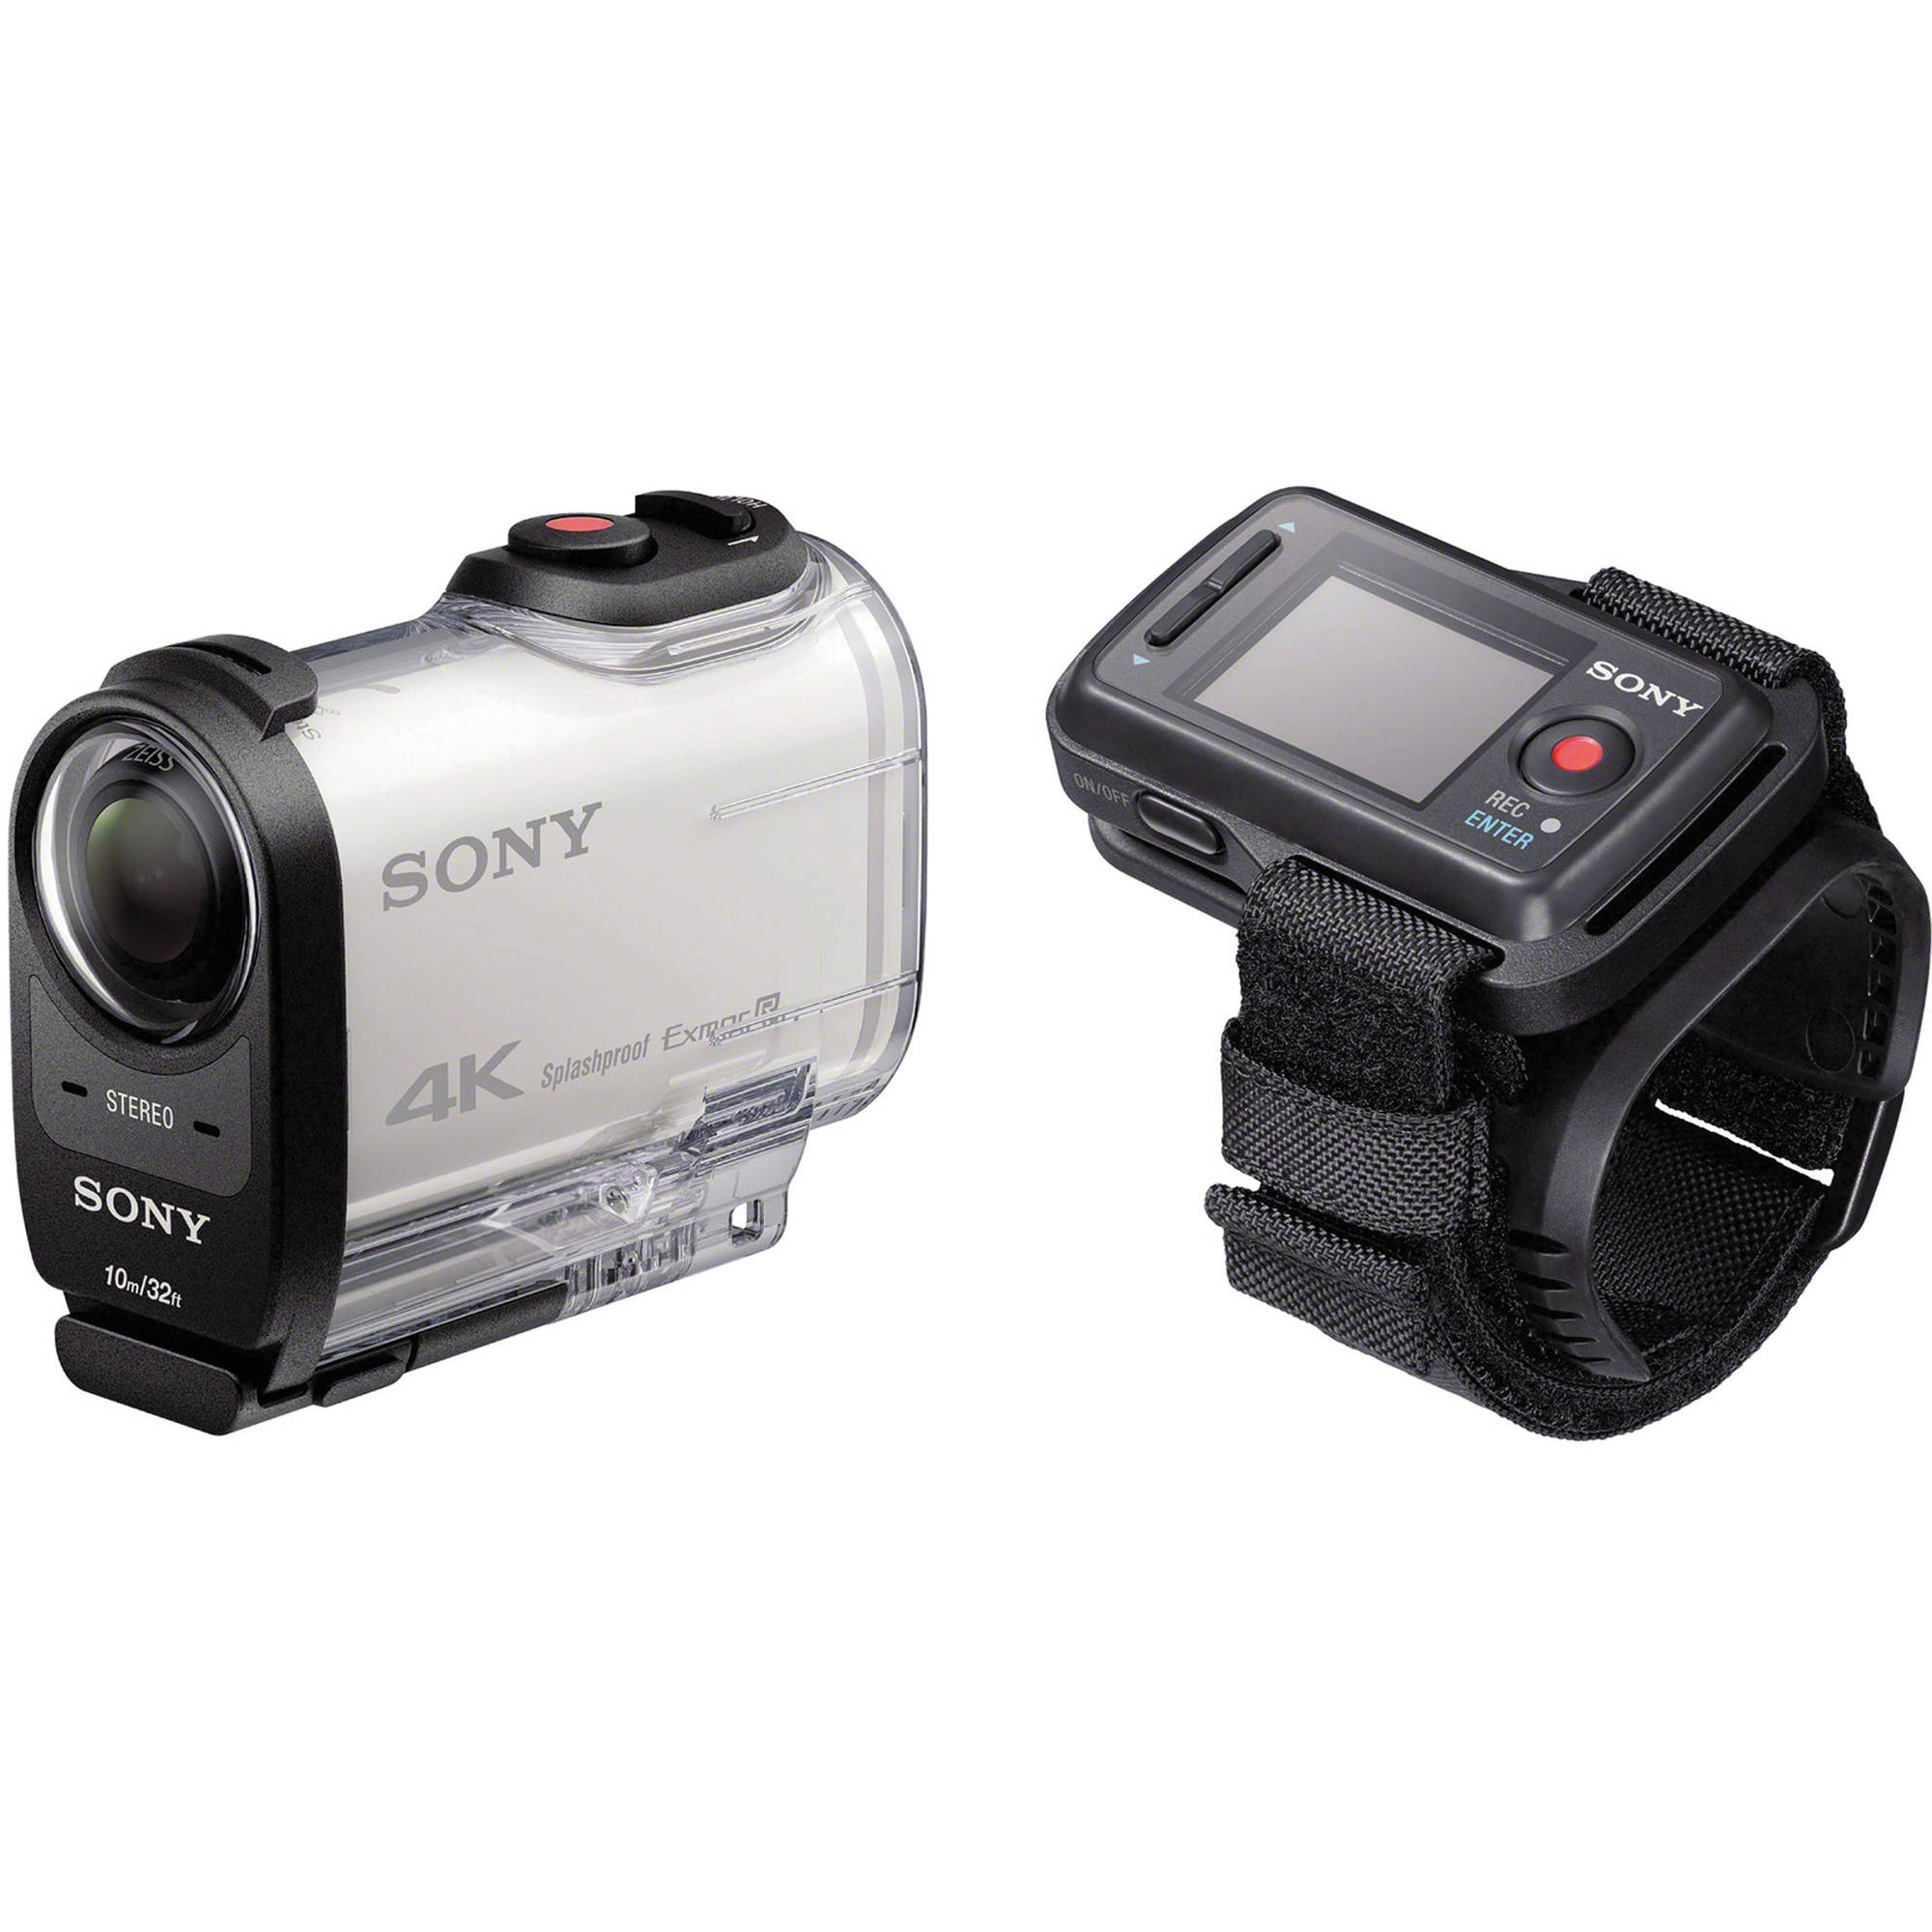 Image result for sony sport camera